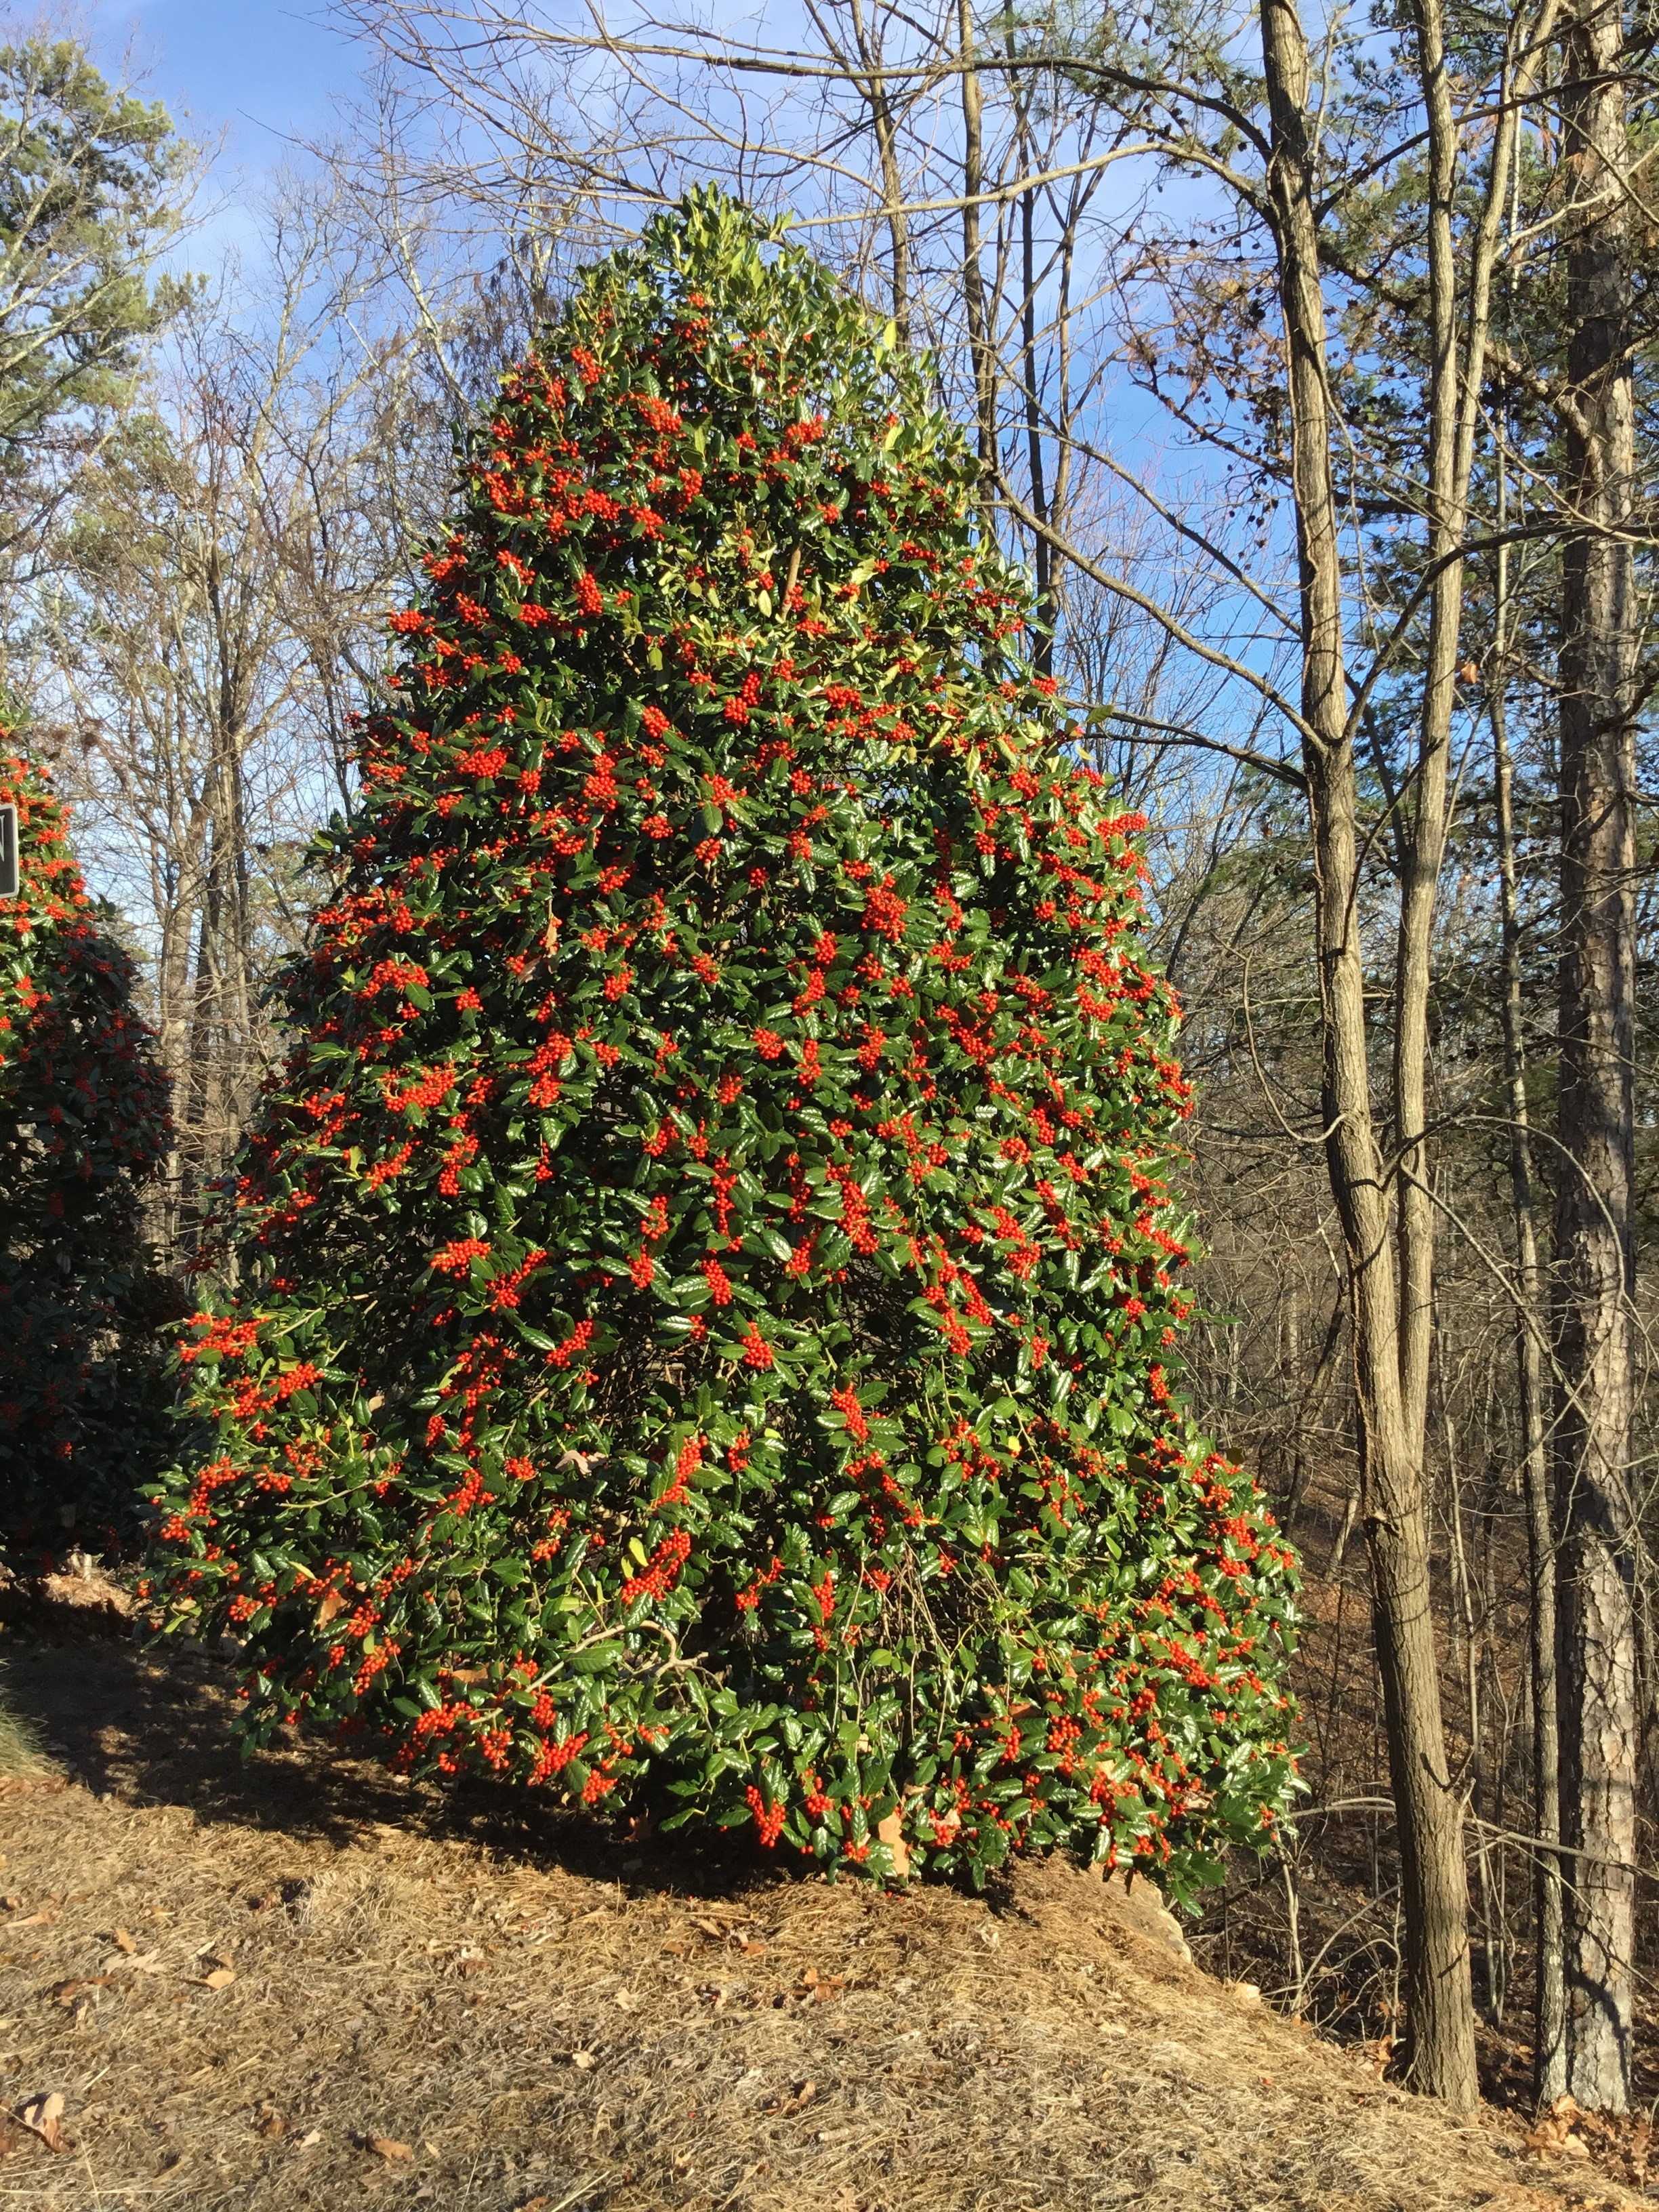 Holly trees - Hollies are dioecious; meaning the male plants produce pollen, and the female plants produce berries, the reason we want these evergreens trees. To get the berries, a male plant needs to be within 30-40' of the female for the holly to have berries. Some are self-pollinating.Zone: 3-11Size: 30'-40' x 15'-25' (slight variation depending on cultivar).Cultivars Suggested: 'Nellie Stevens', 'Emily Brunner', 'Satyr' Holly (American holly)Culture: Hollies prefer full sun, but some tolerate more shade ('Satyr' and 'Emily Brunner'). The more shade the less fruit, but you still have the evergreen coverage.Growth rate: Medium to FastPests and Diseases: Hollies are relatively pest-free, but some do suffer from winter die-back and scale.*Nellie Stevens' pictured